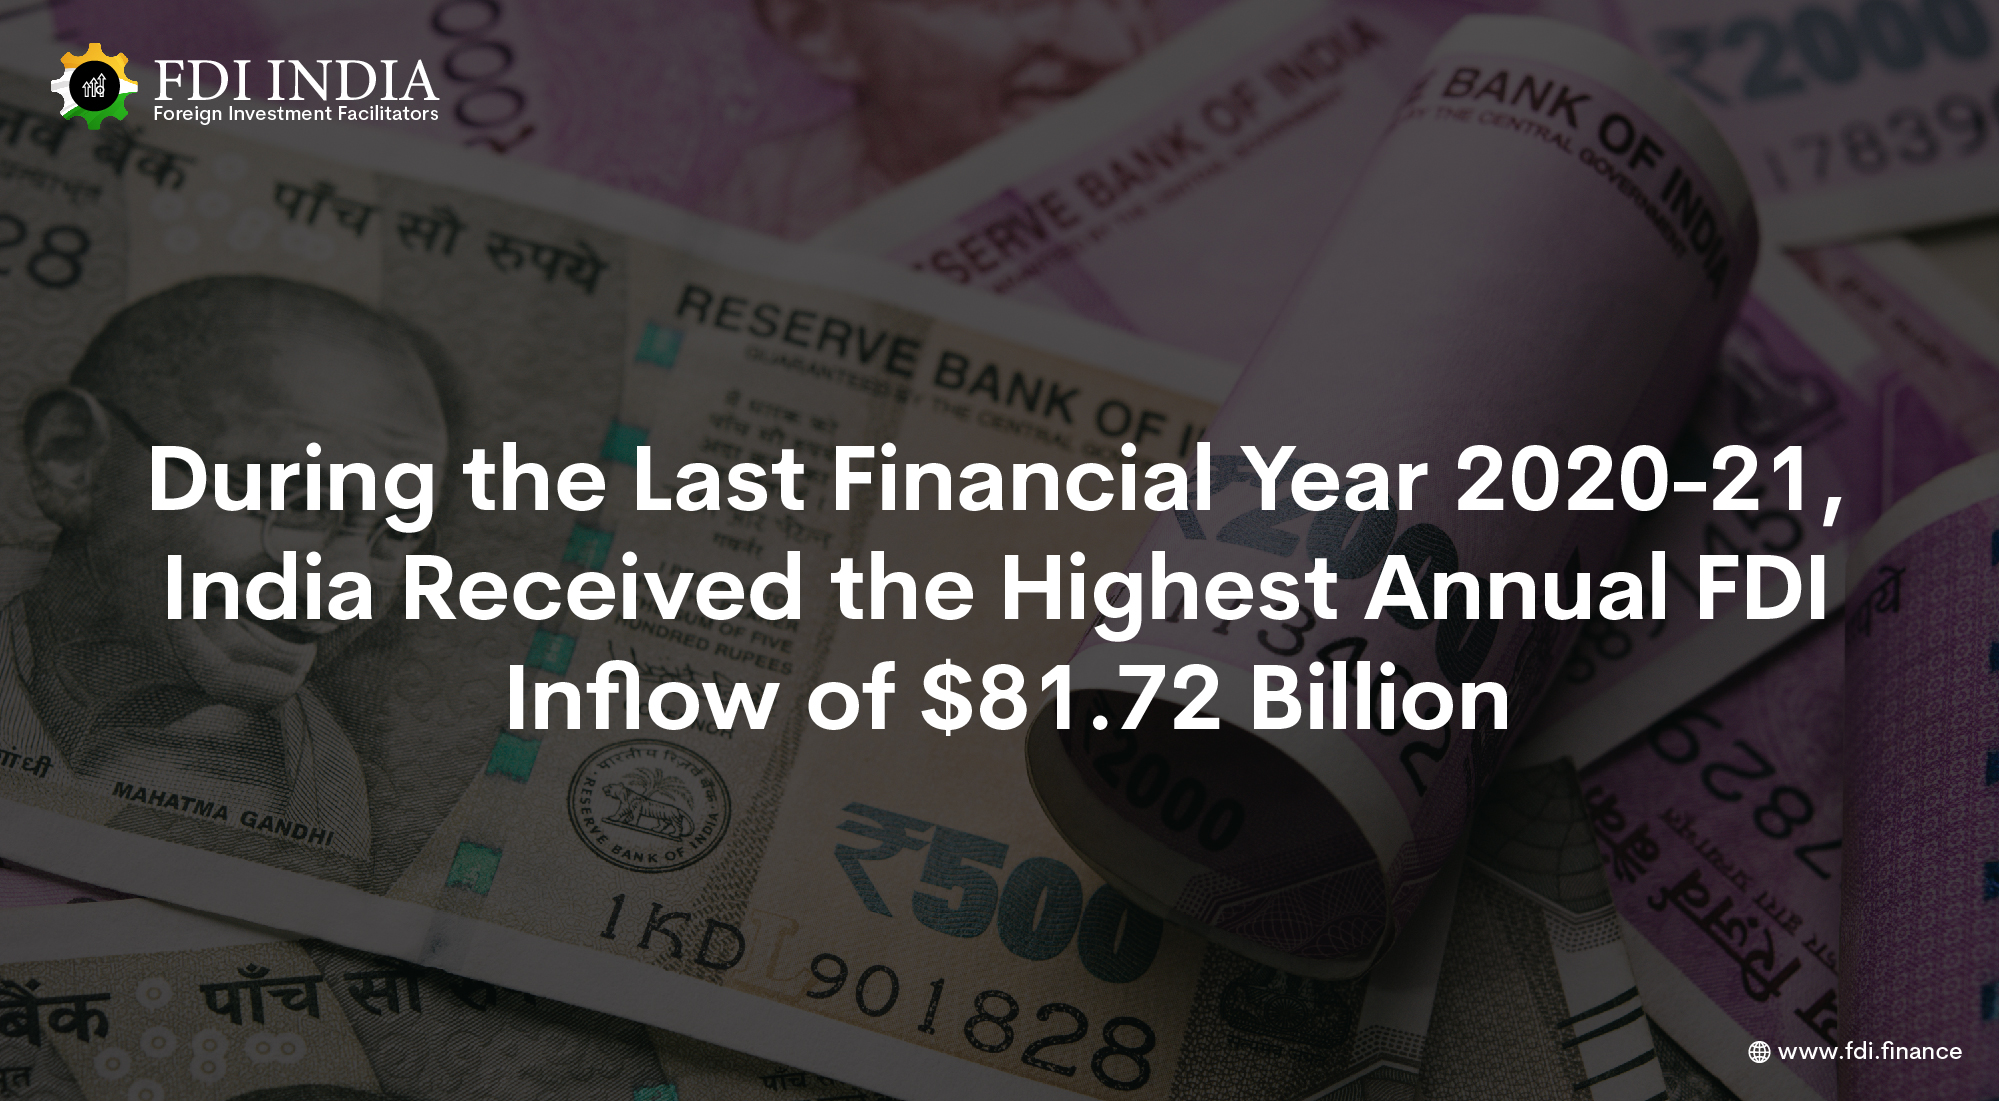 During the Last Financial Year 2020-21, India Received the Highest Annual FDI Inflow of $81.72 Billion